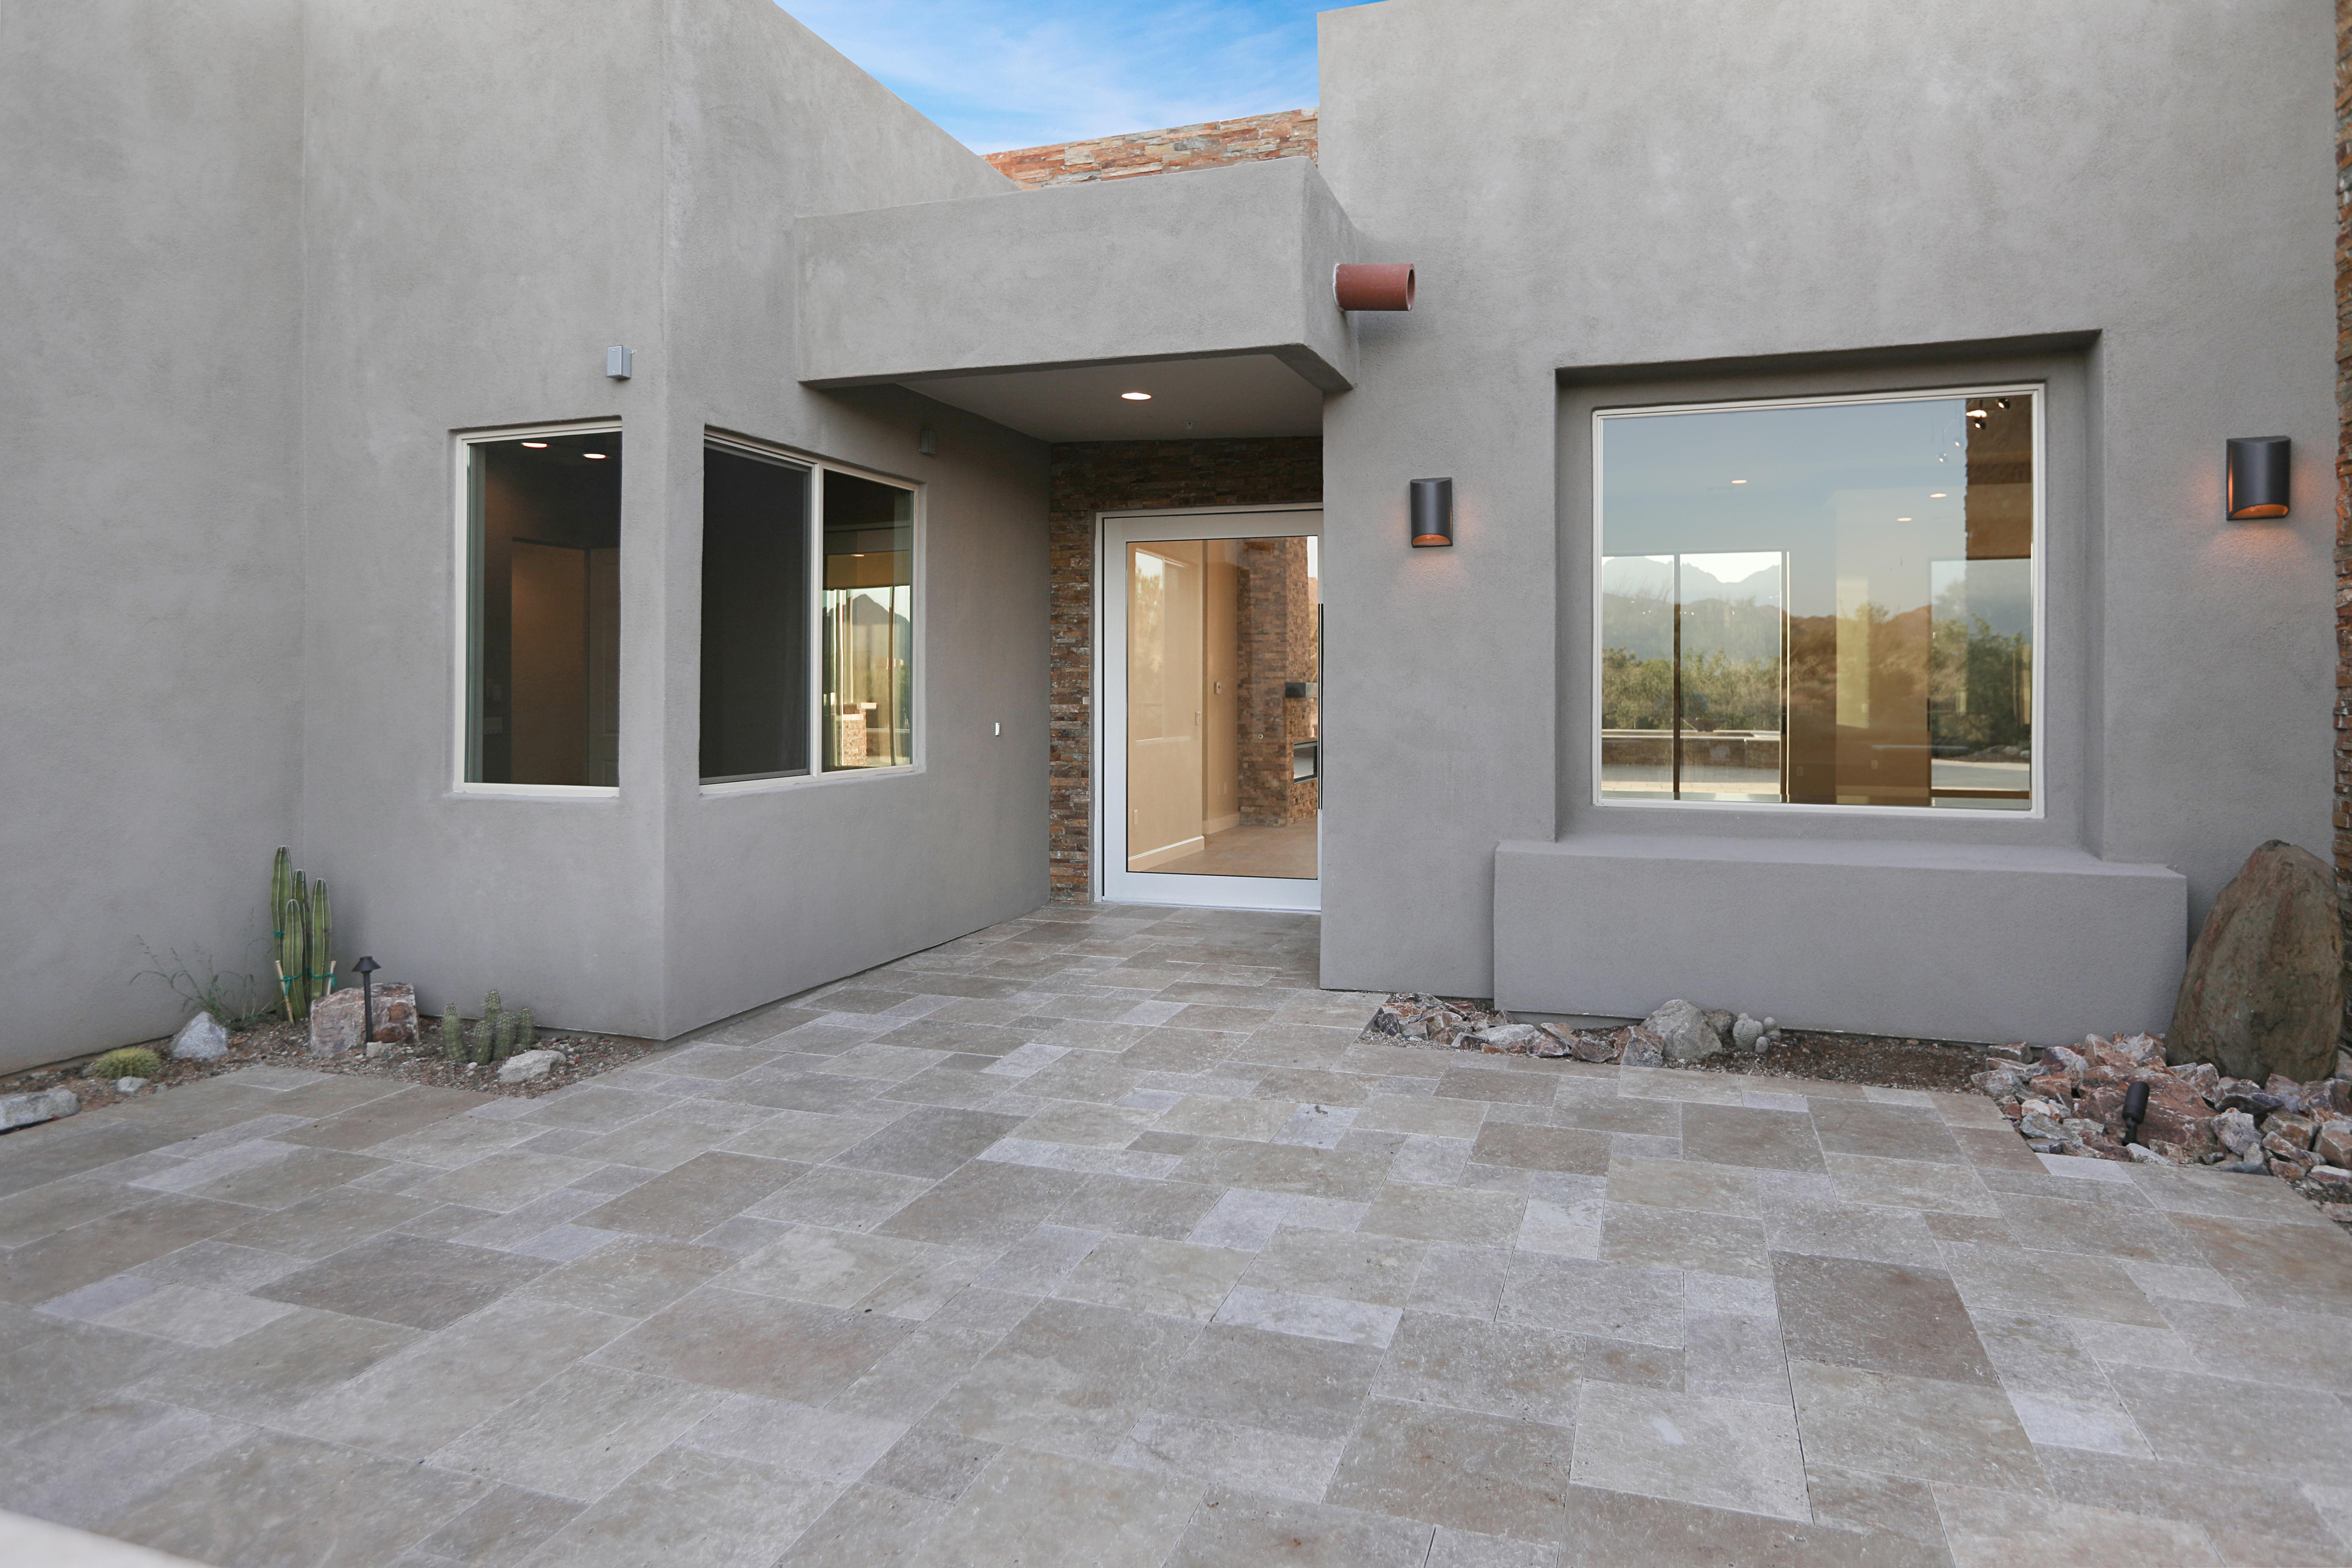 Exterior featured in the Rincon - 3,000sqft By Fairfield Homes in Tucson, AZ